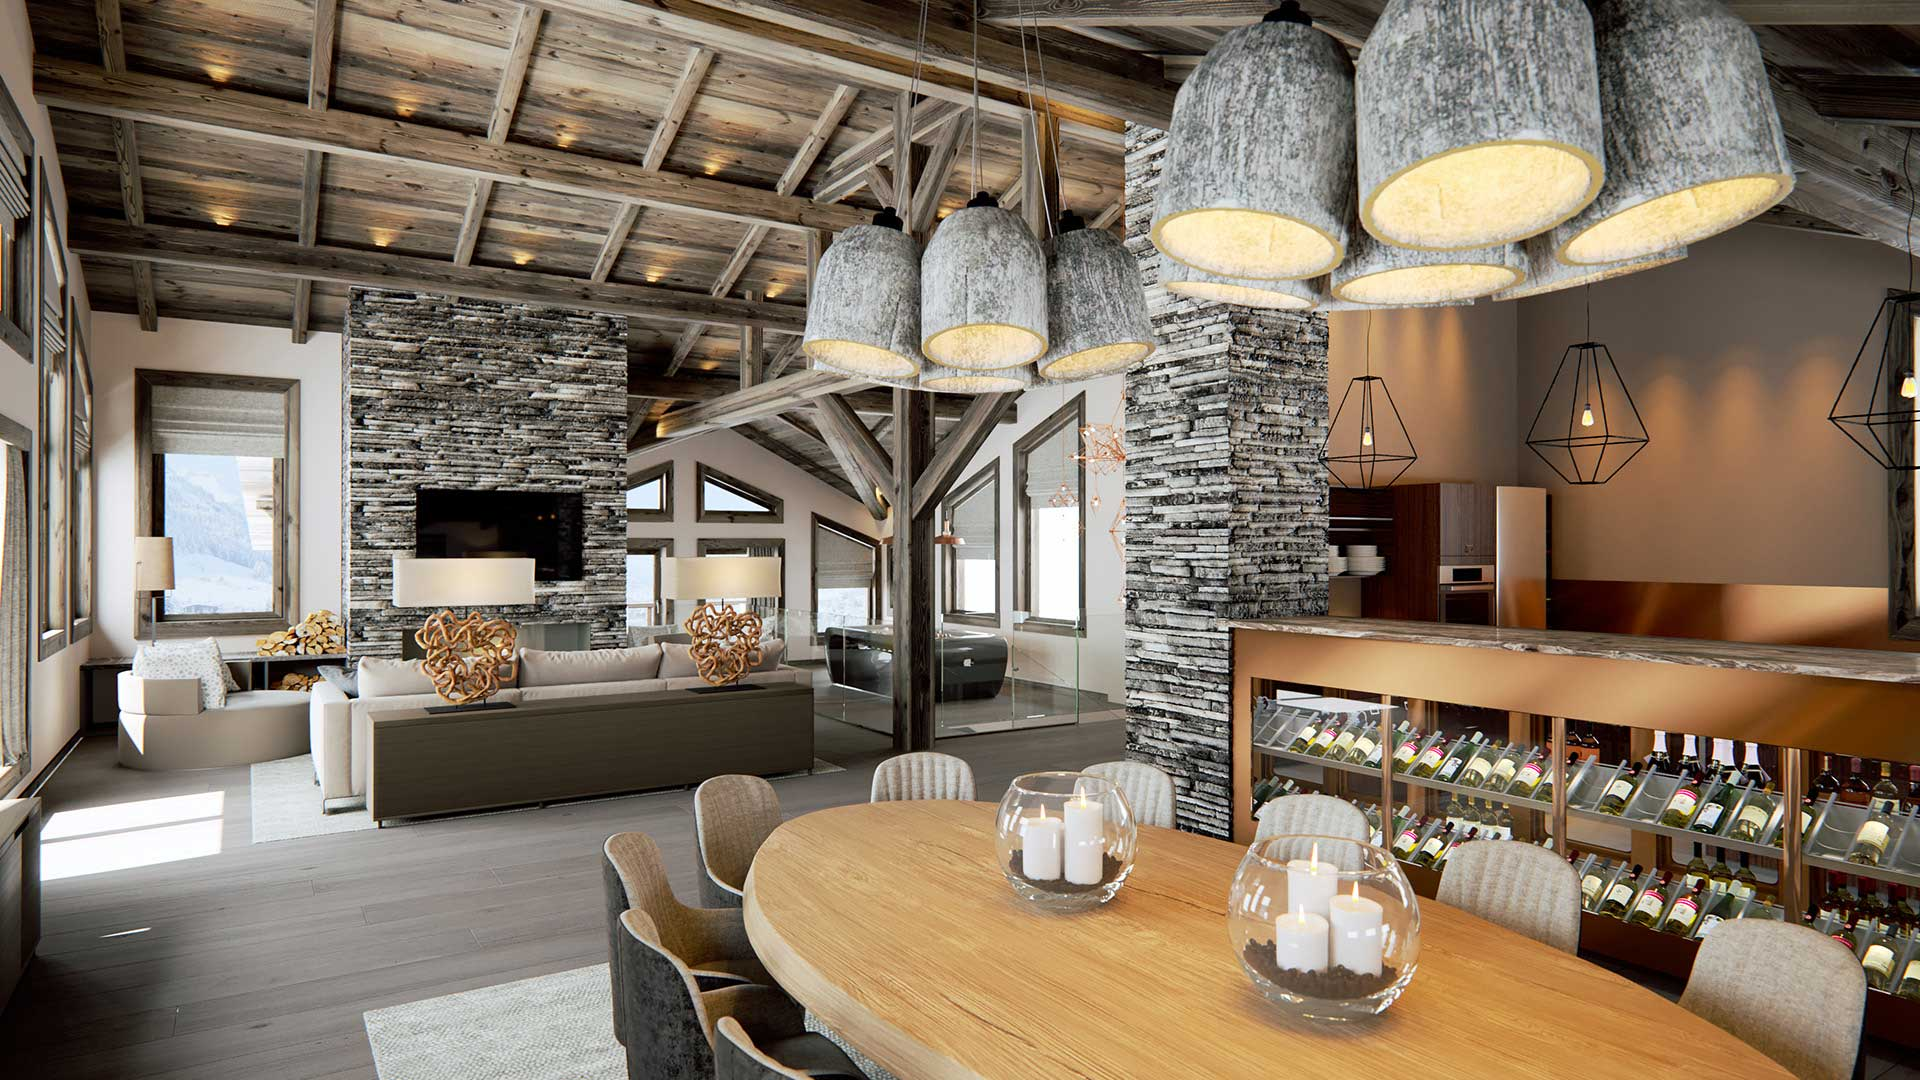 Luxurious dinning room of a chalet in the mountains made from 3D computer generated images architect